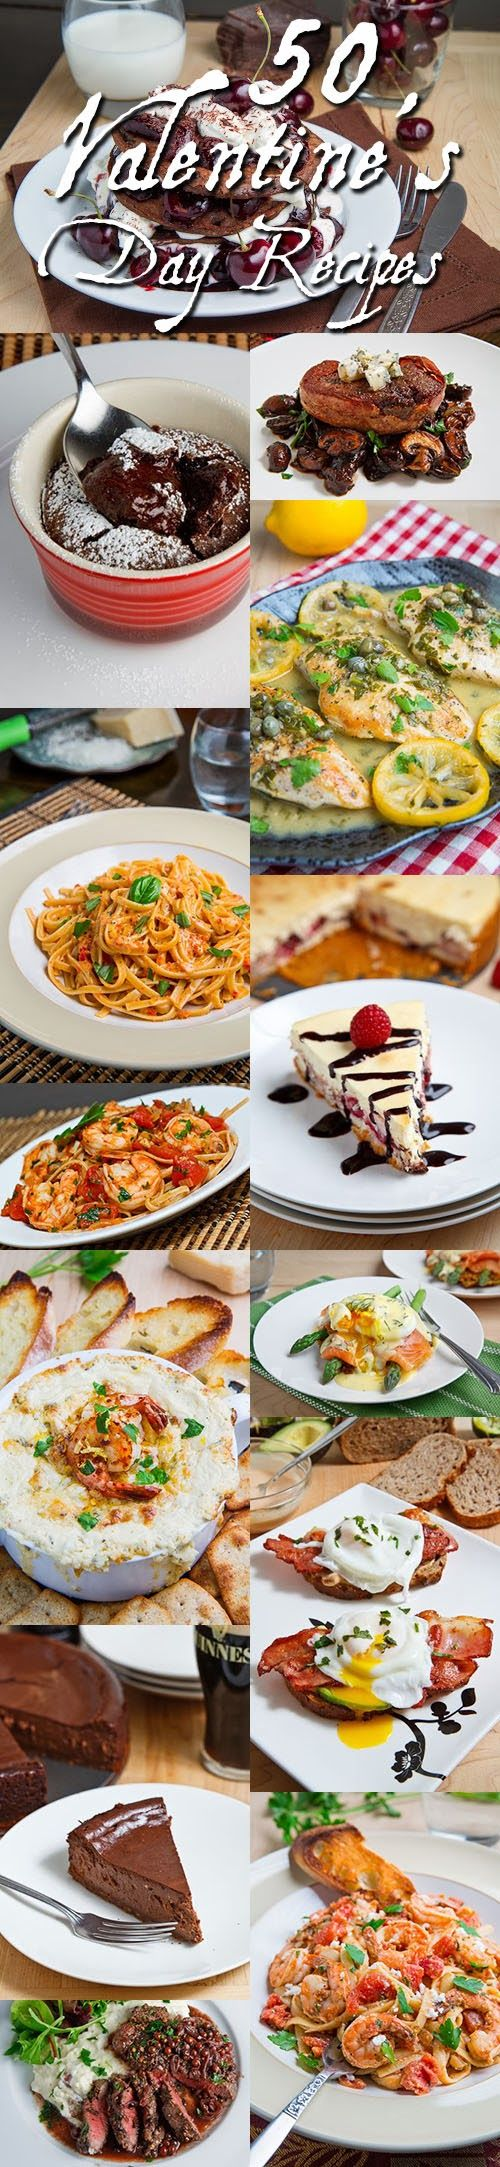 valentine's day recipes for dinner party